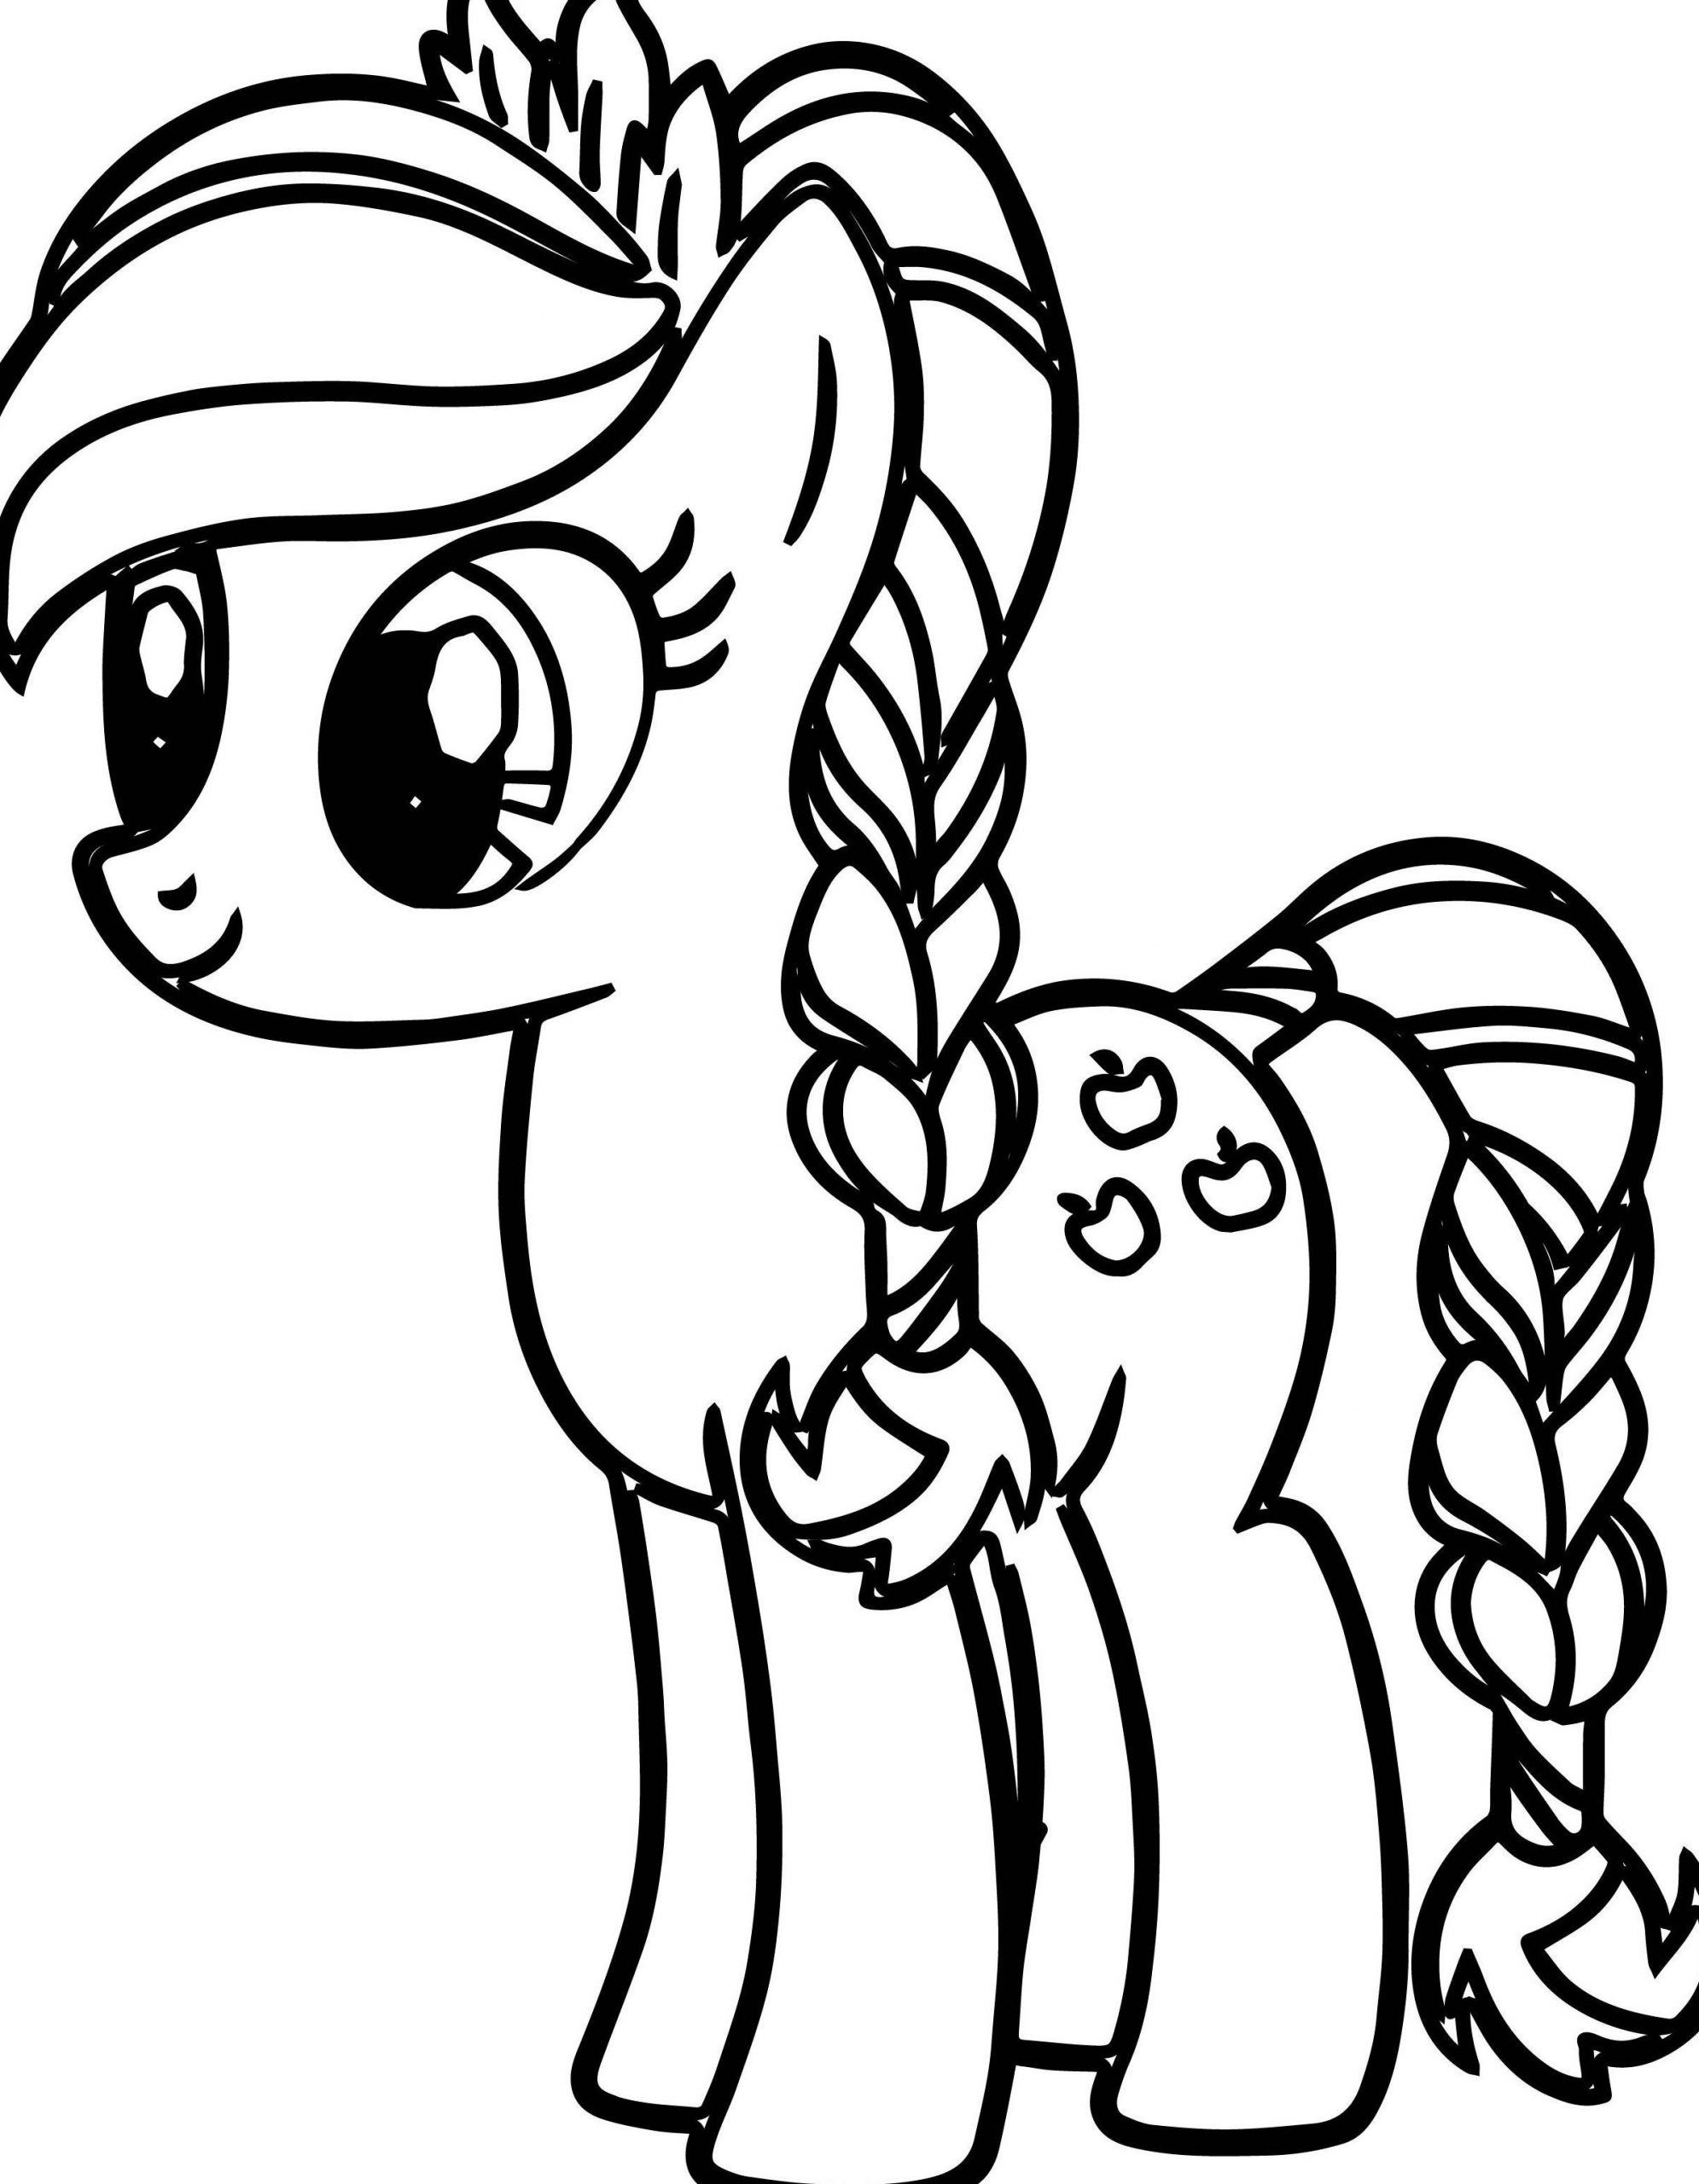 My Little Pony Unicorn Coloring Page Youngandtae Com Unicorn Coloring Pages My Little Pony Coloring My Little Pony Rarity [ 2560 x 1991 Pixel ]